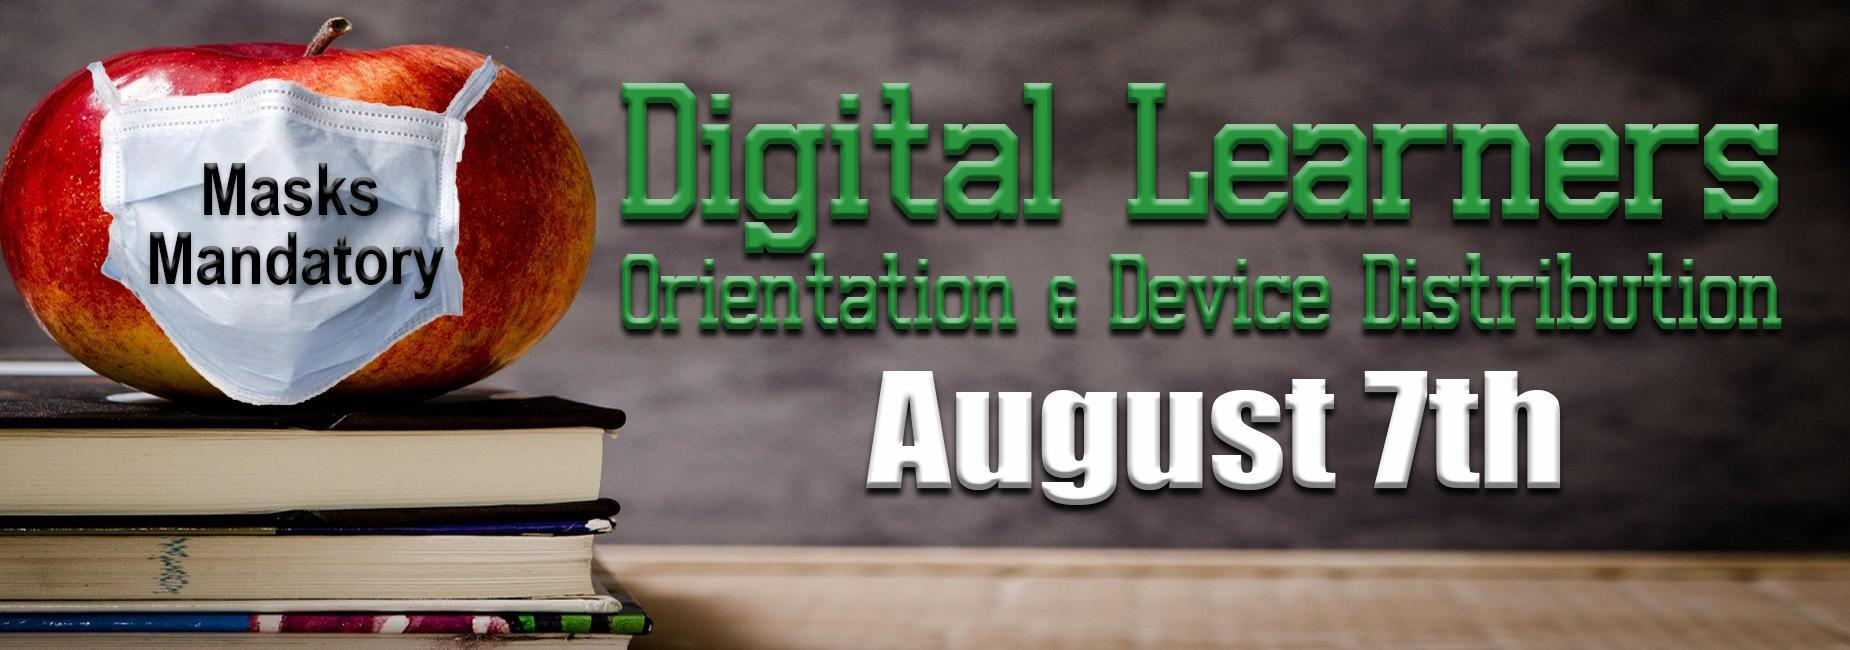 Digital Learners Orientation and Device Distribution August 7th Mask Mandatory